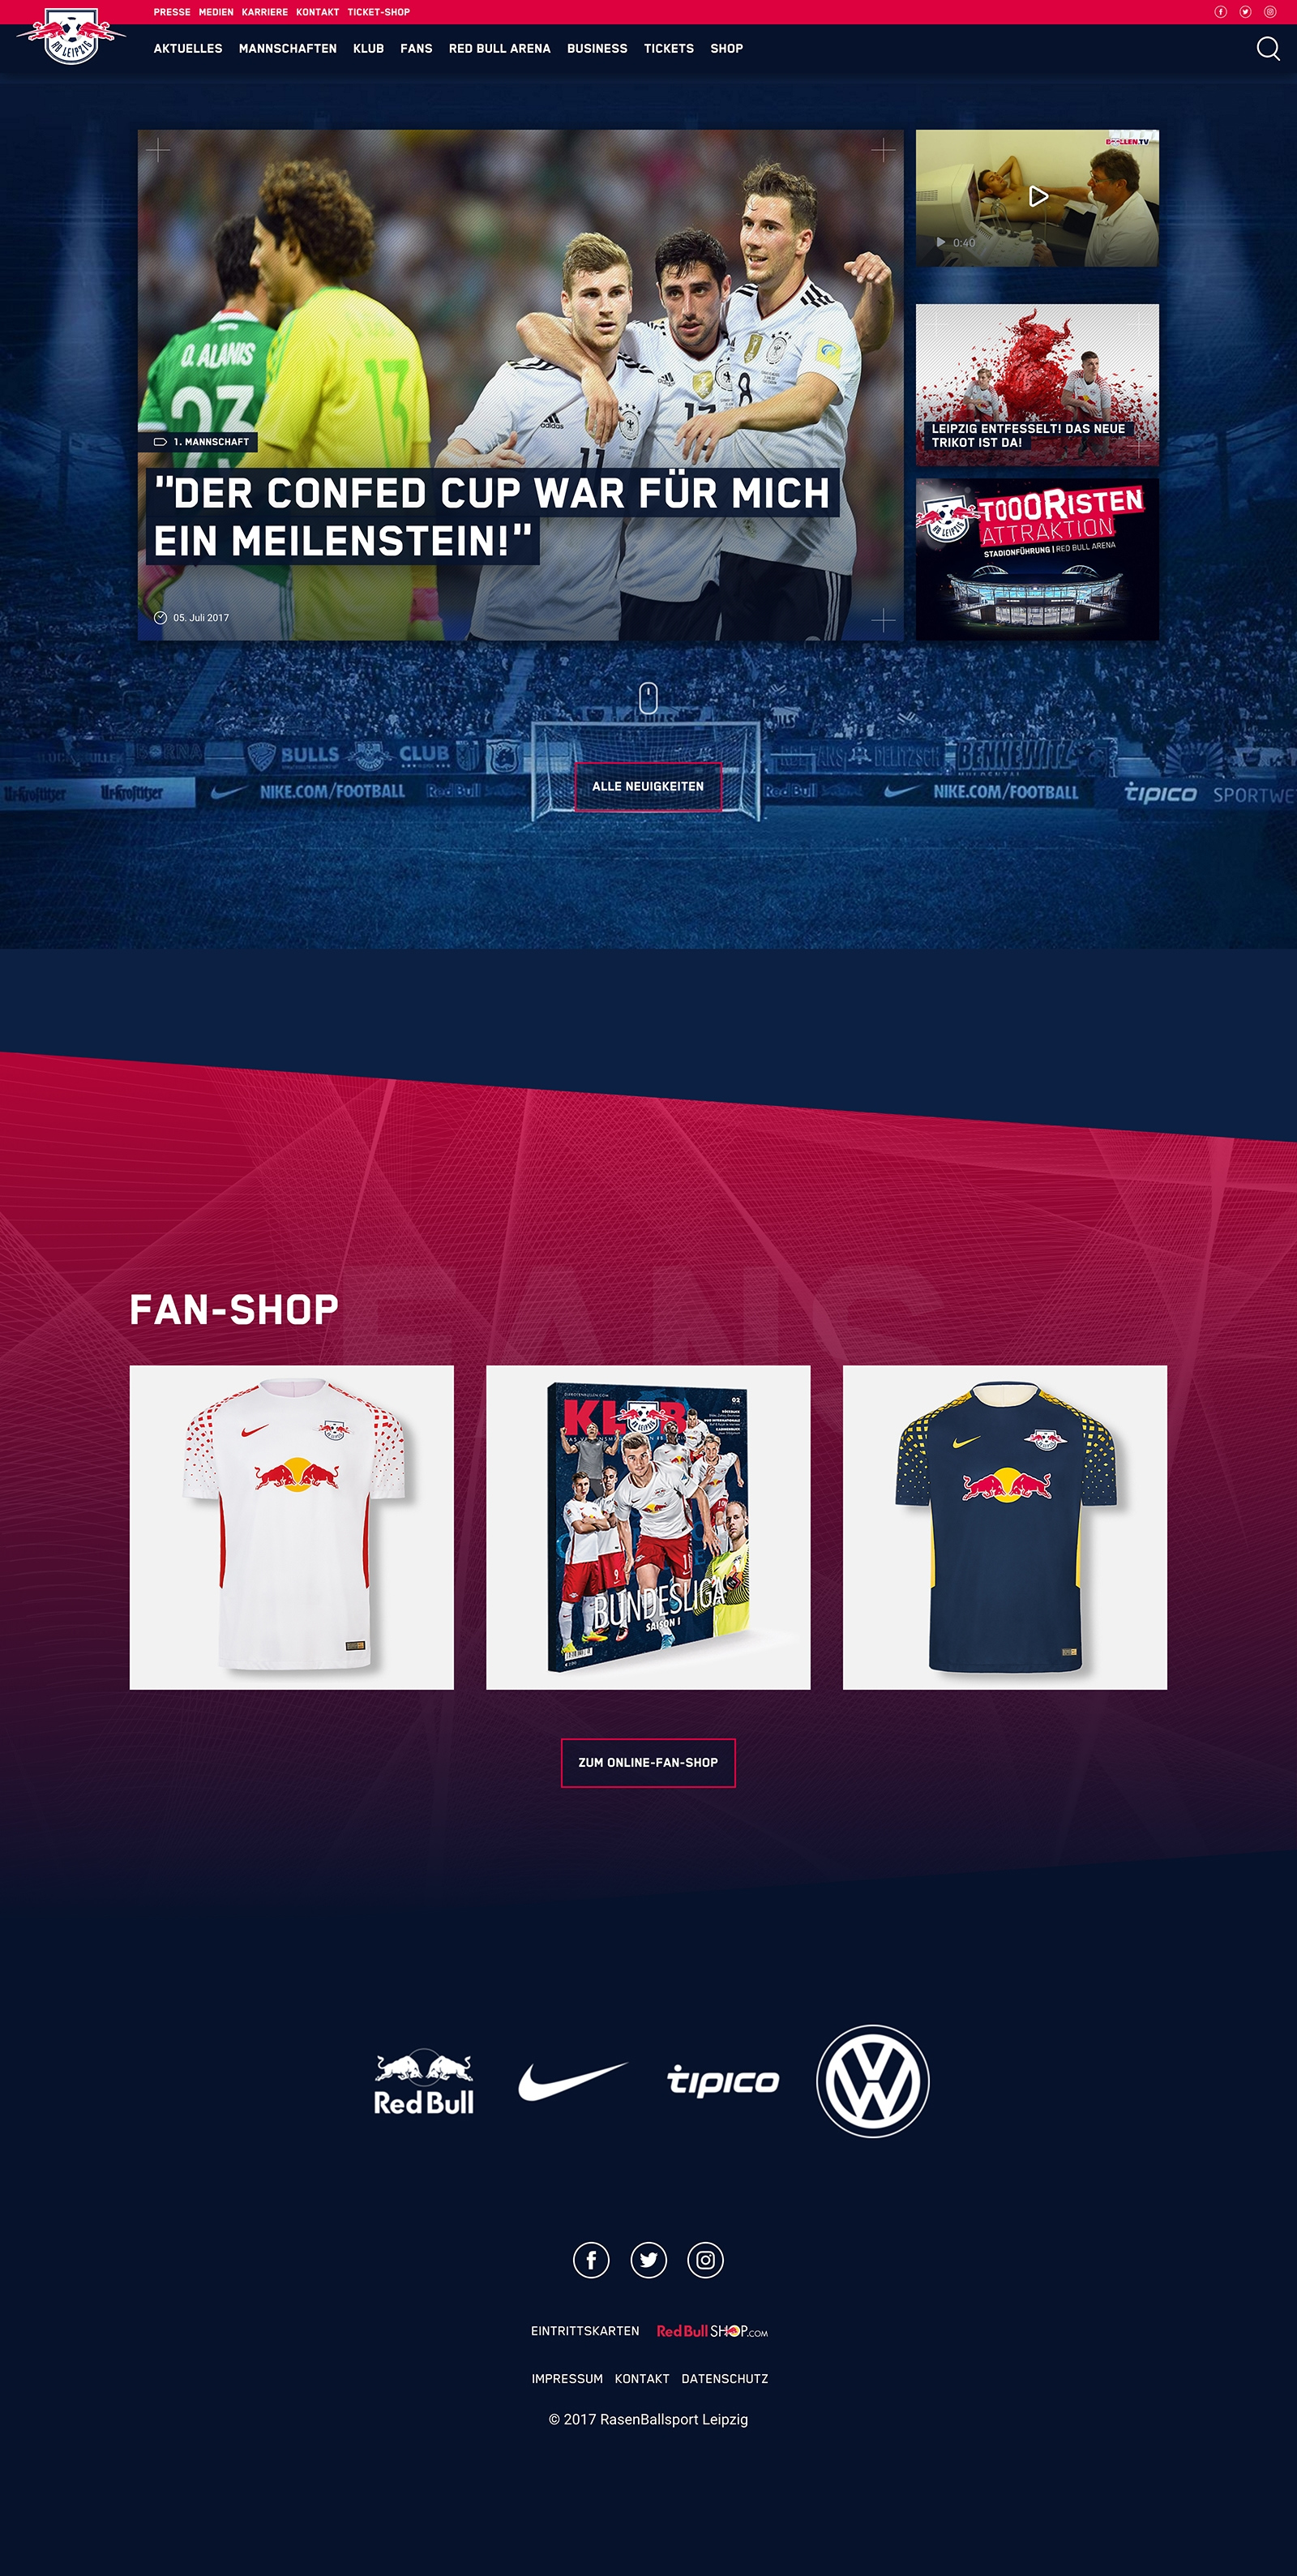 Rb Leipzig Website Relaunch 2017 Image 02